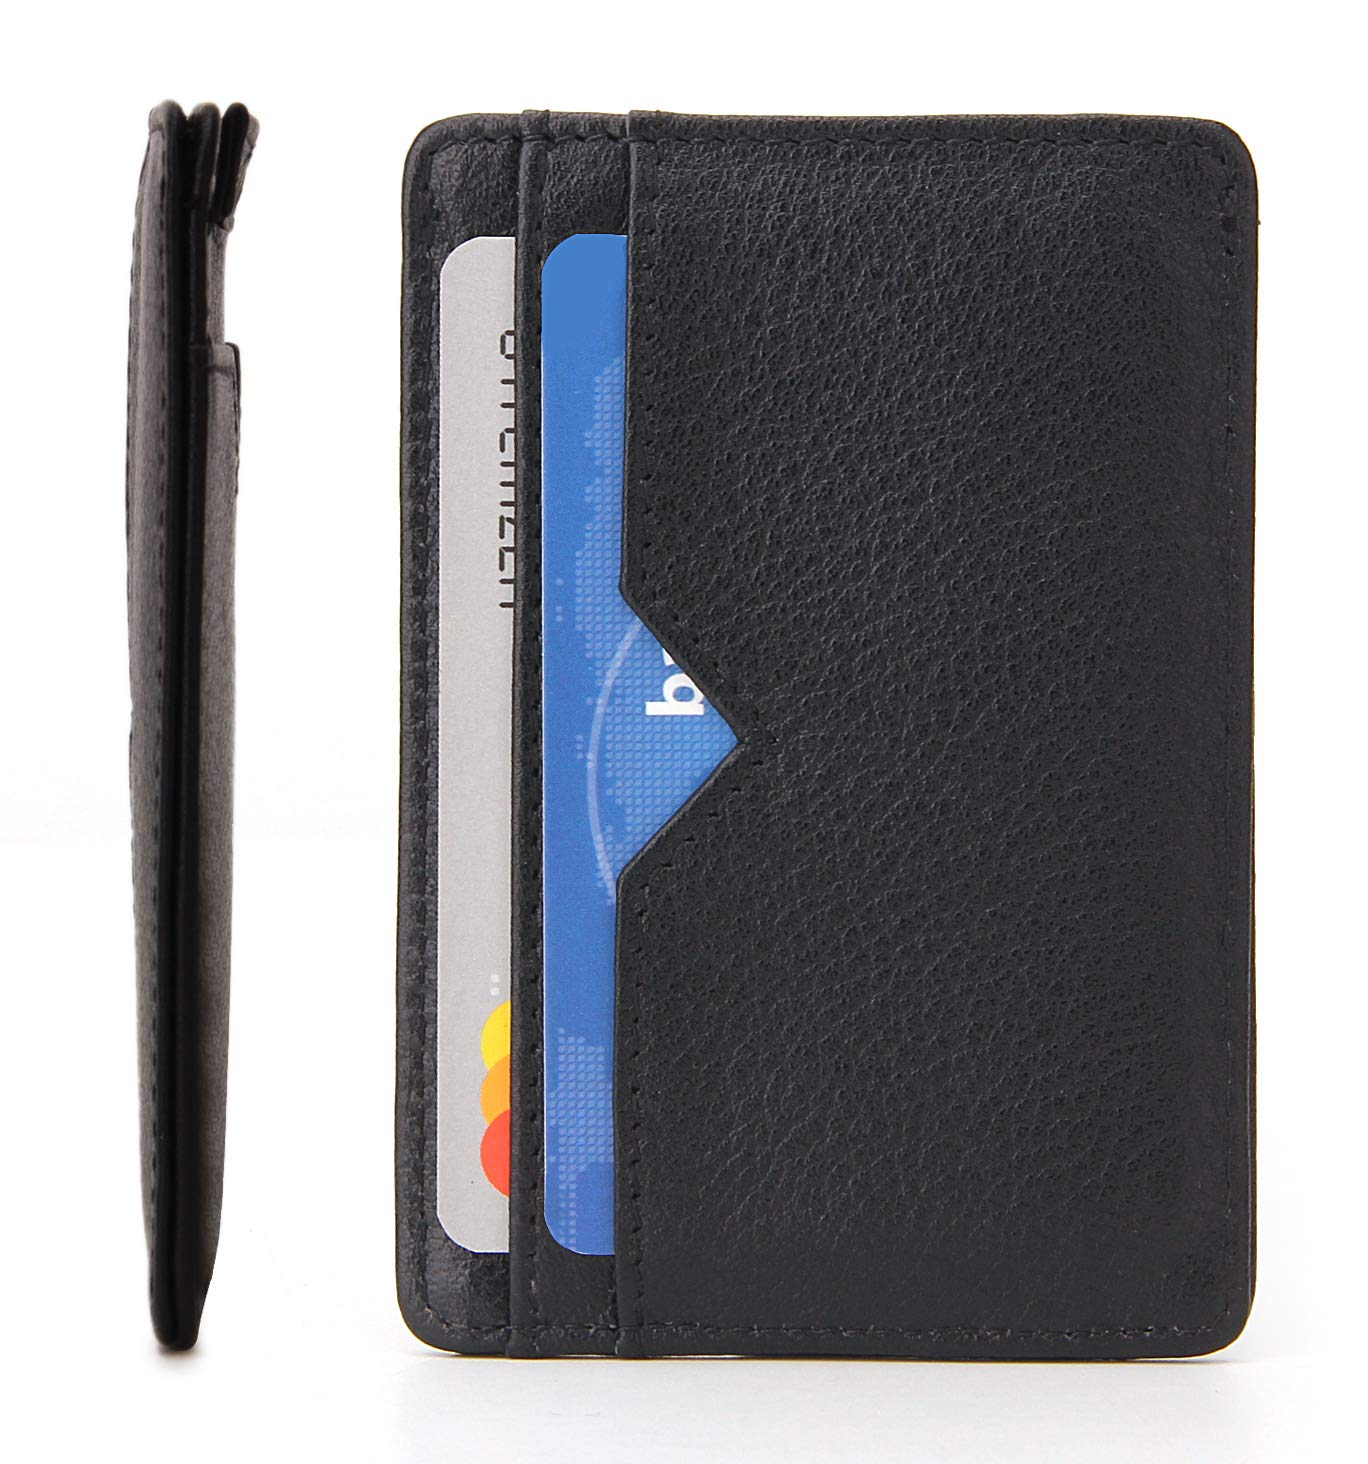 Falcon Vault - RFID Blocking Men\'s Card Holder Wallet - Genuine Italian Leather - 13.56 MHz RFID Protection - Minimalist and Slim Size - Holds Upto 10 Cards - Retractable Strap Design - Black